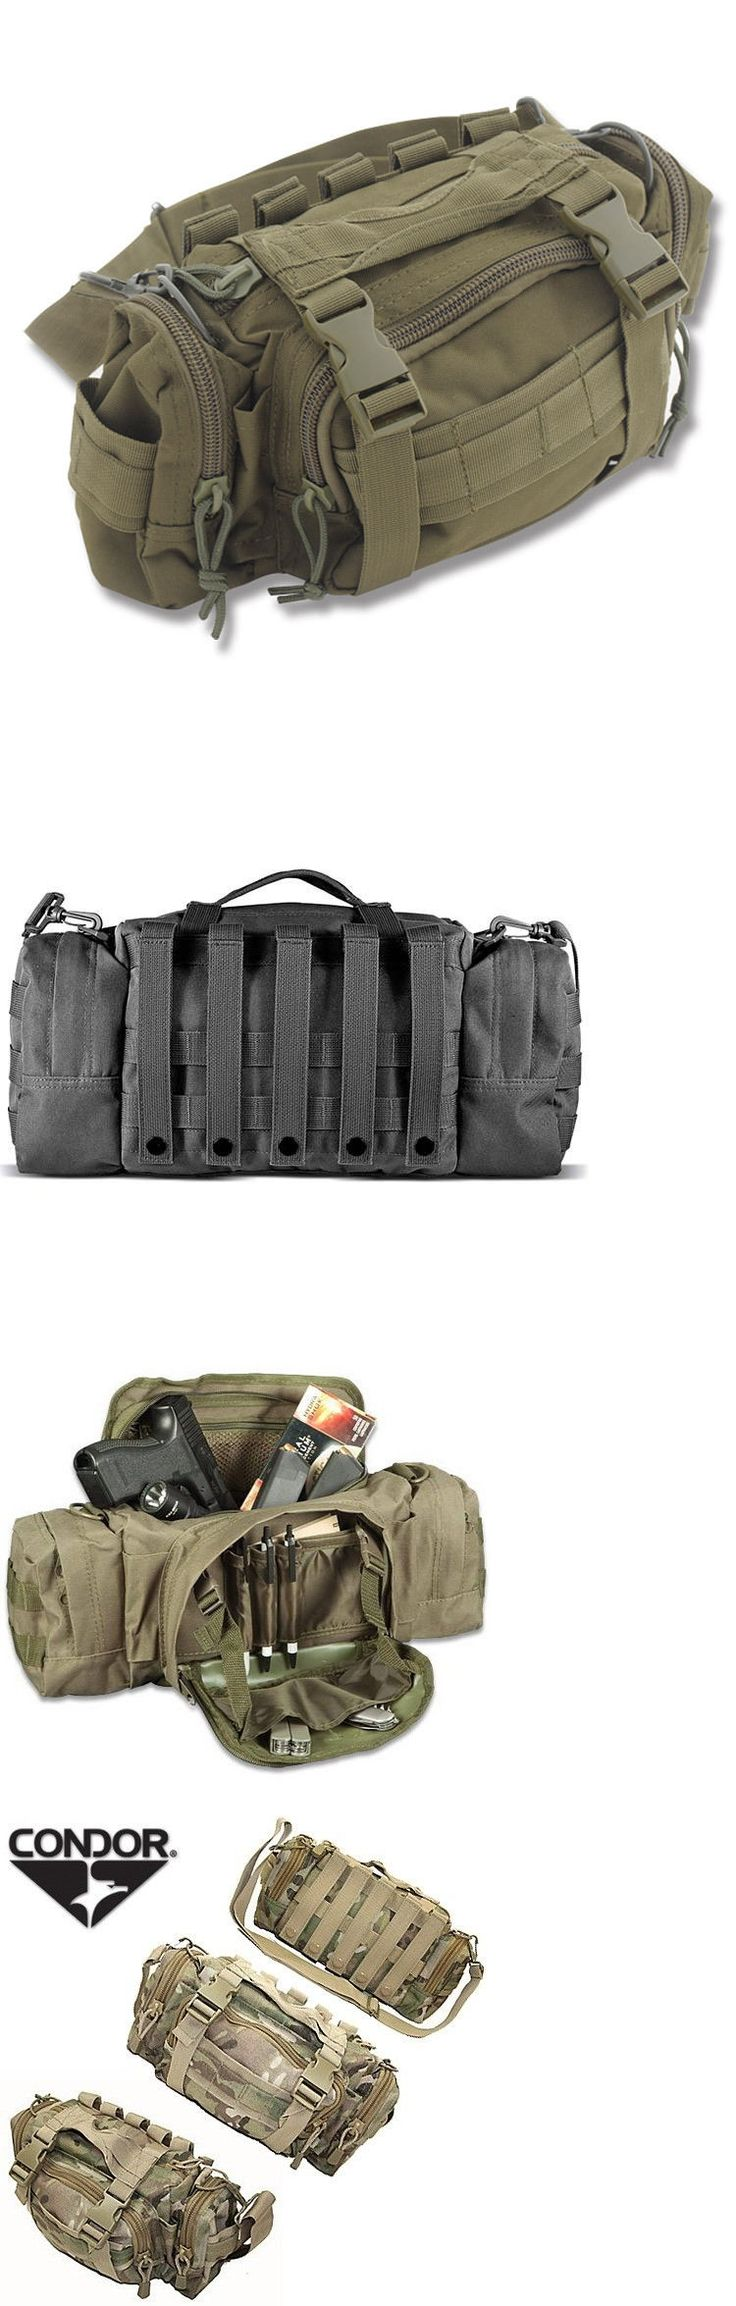 Tactical Molle Pouches 177900: Od Olive Drab Molle Modular Rapid Response Medical Bag Police Military Camping BUY IT NOW ONLY: $34.95